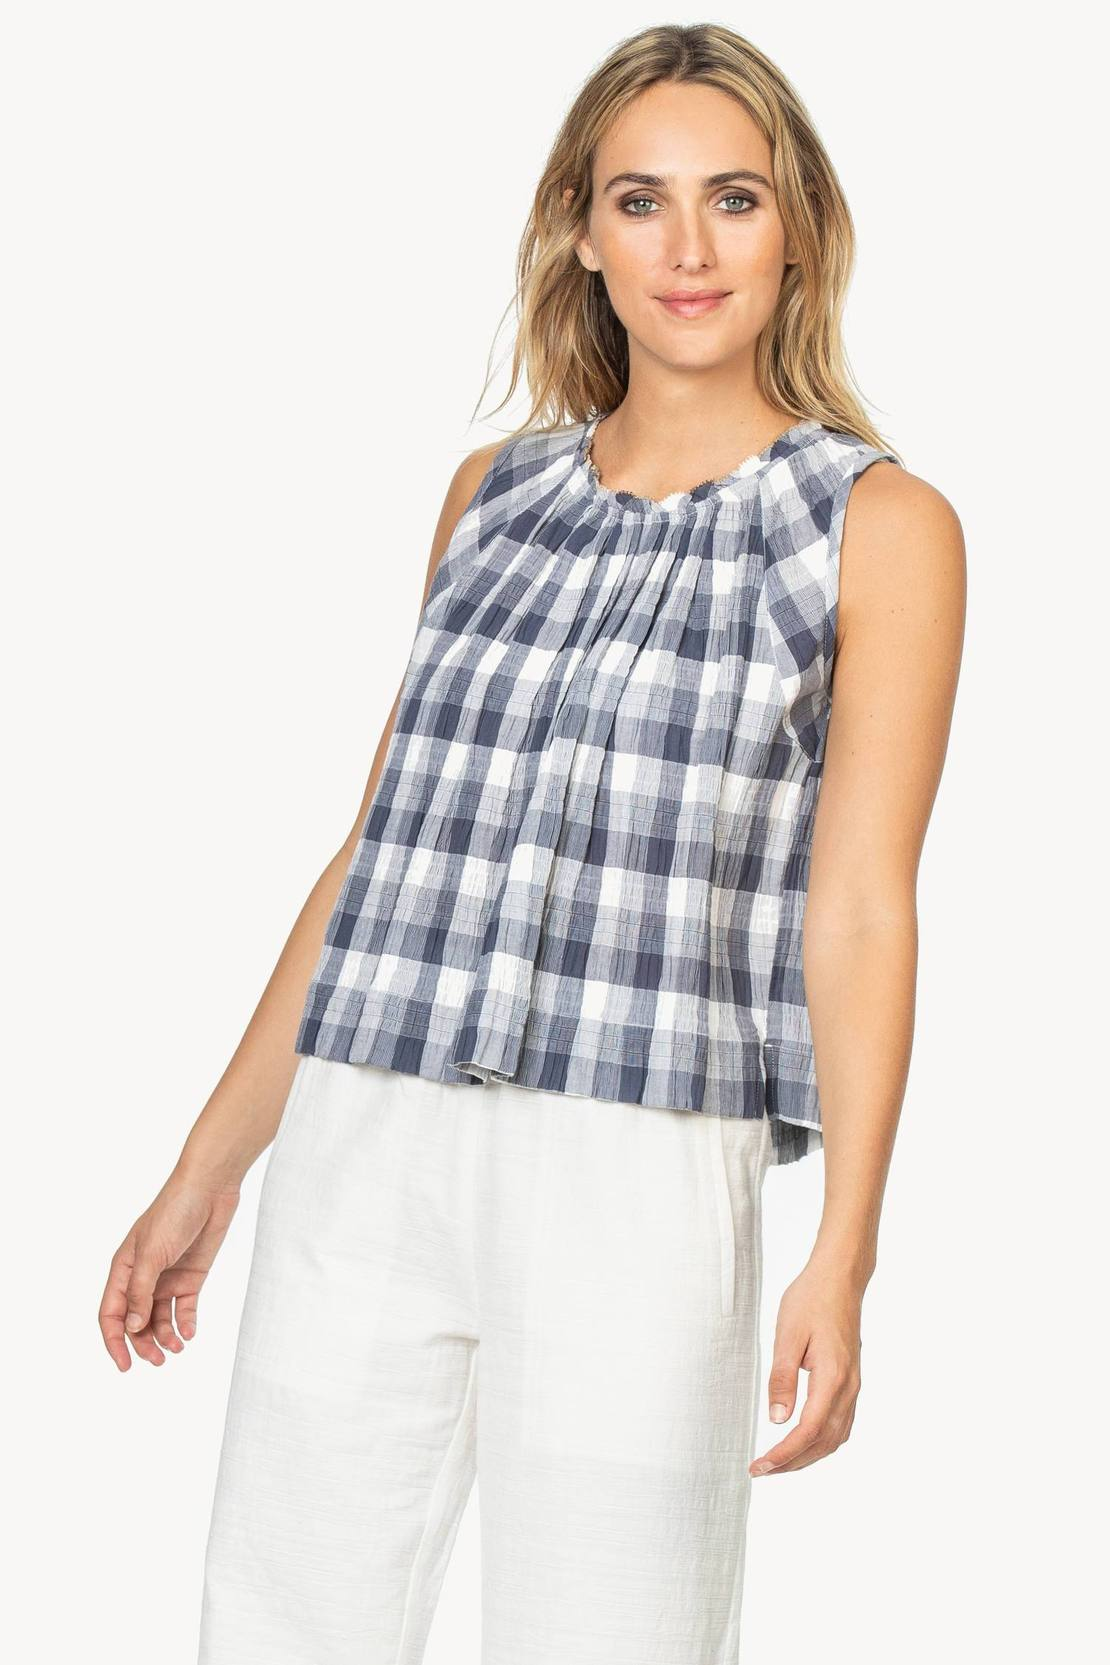 Shirred neck tank (PA1045)